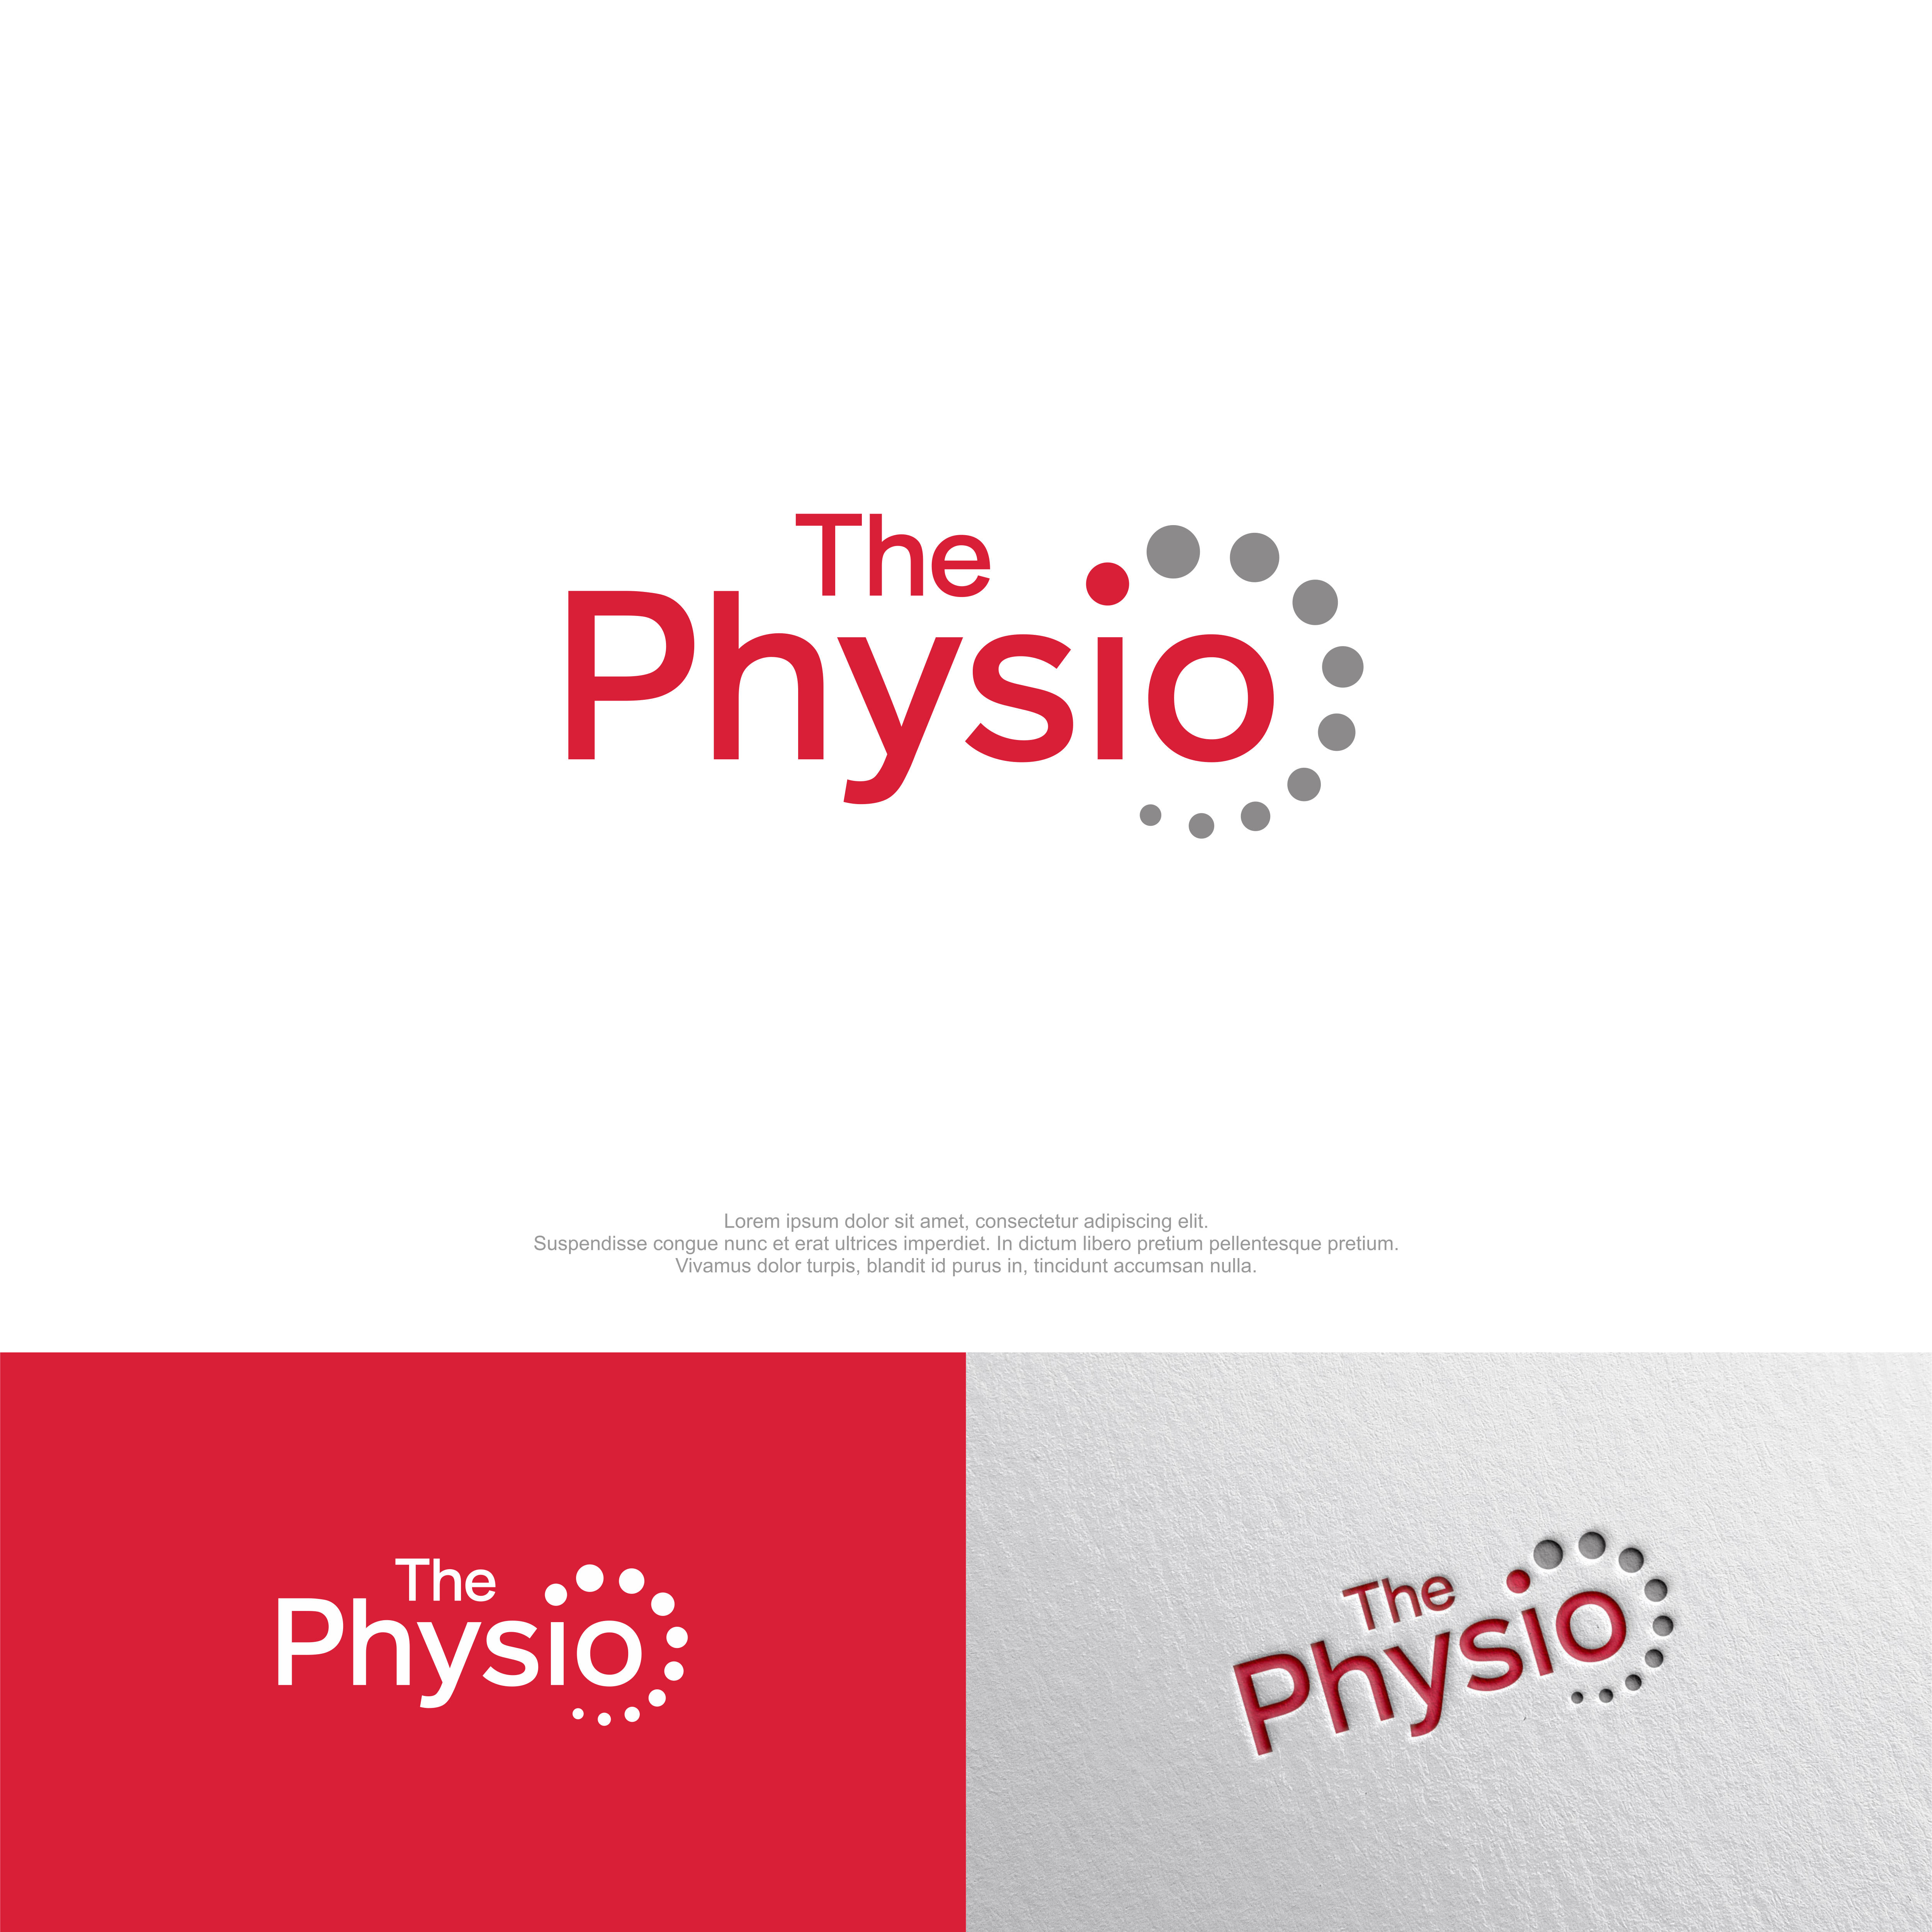 World class physiotherapy clinic needs you help to design a killer logo